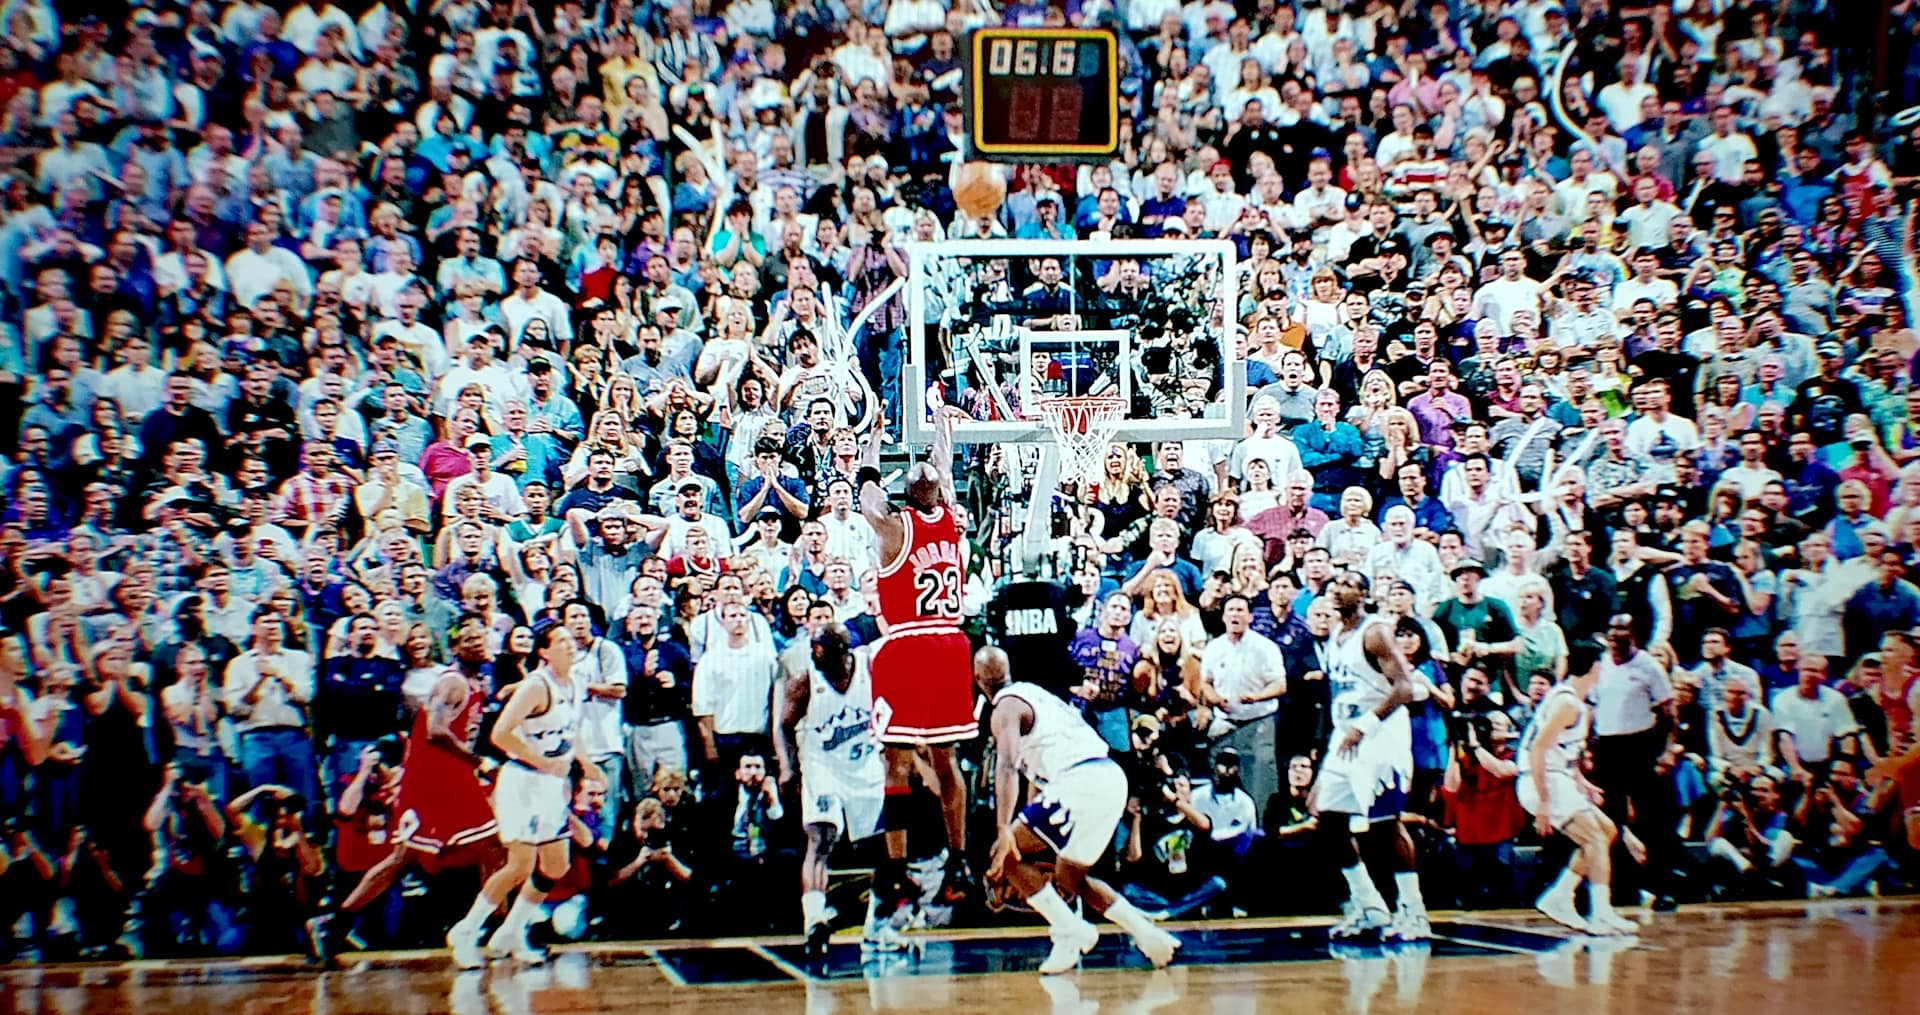 Michael Jordan The last shot Chicago Bulls